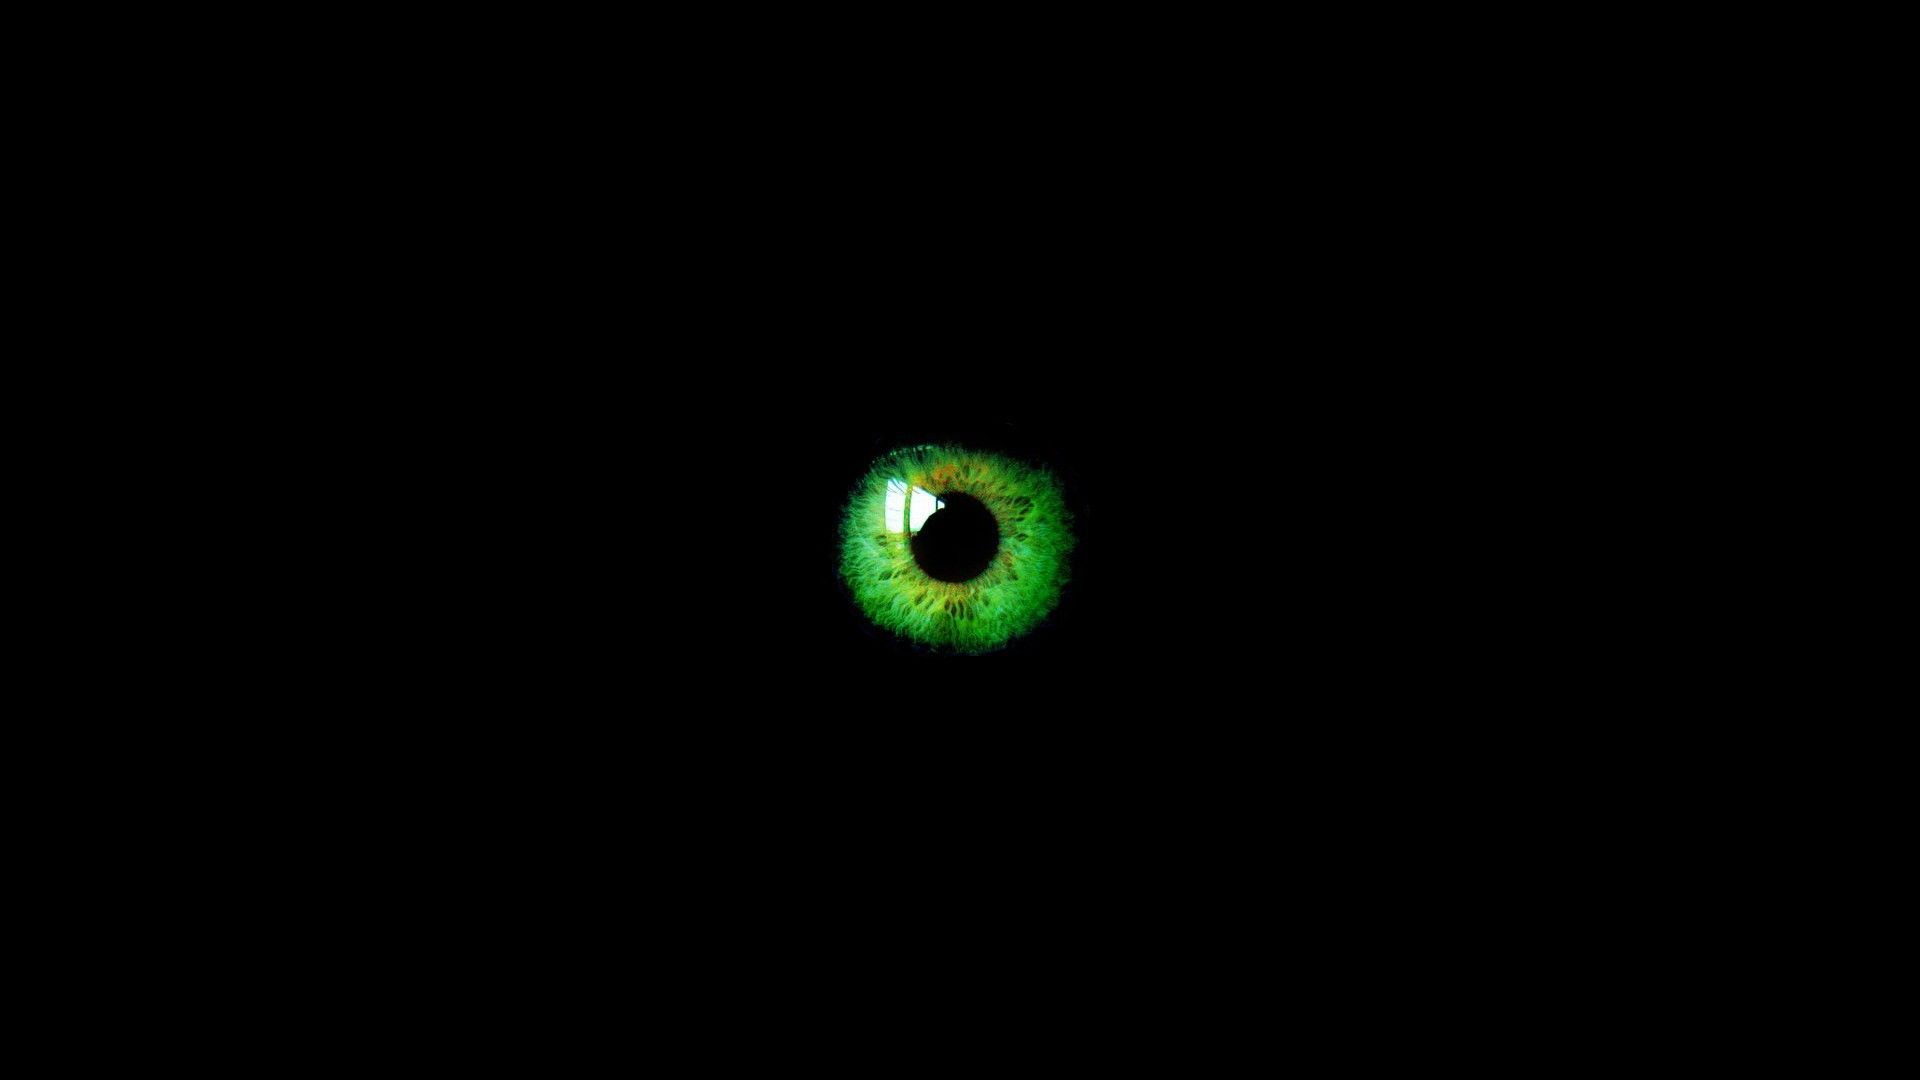 background backgrounds wallpapers eyes black images green eye 1920x1080